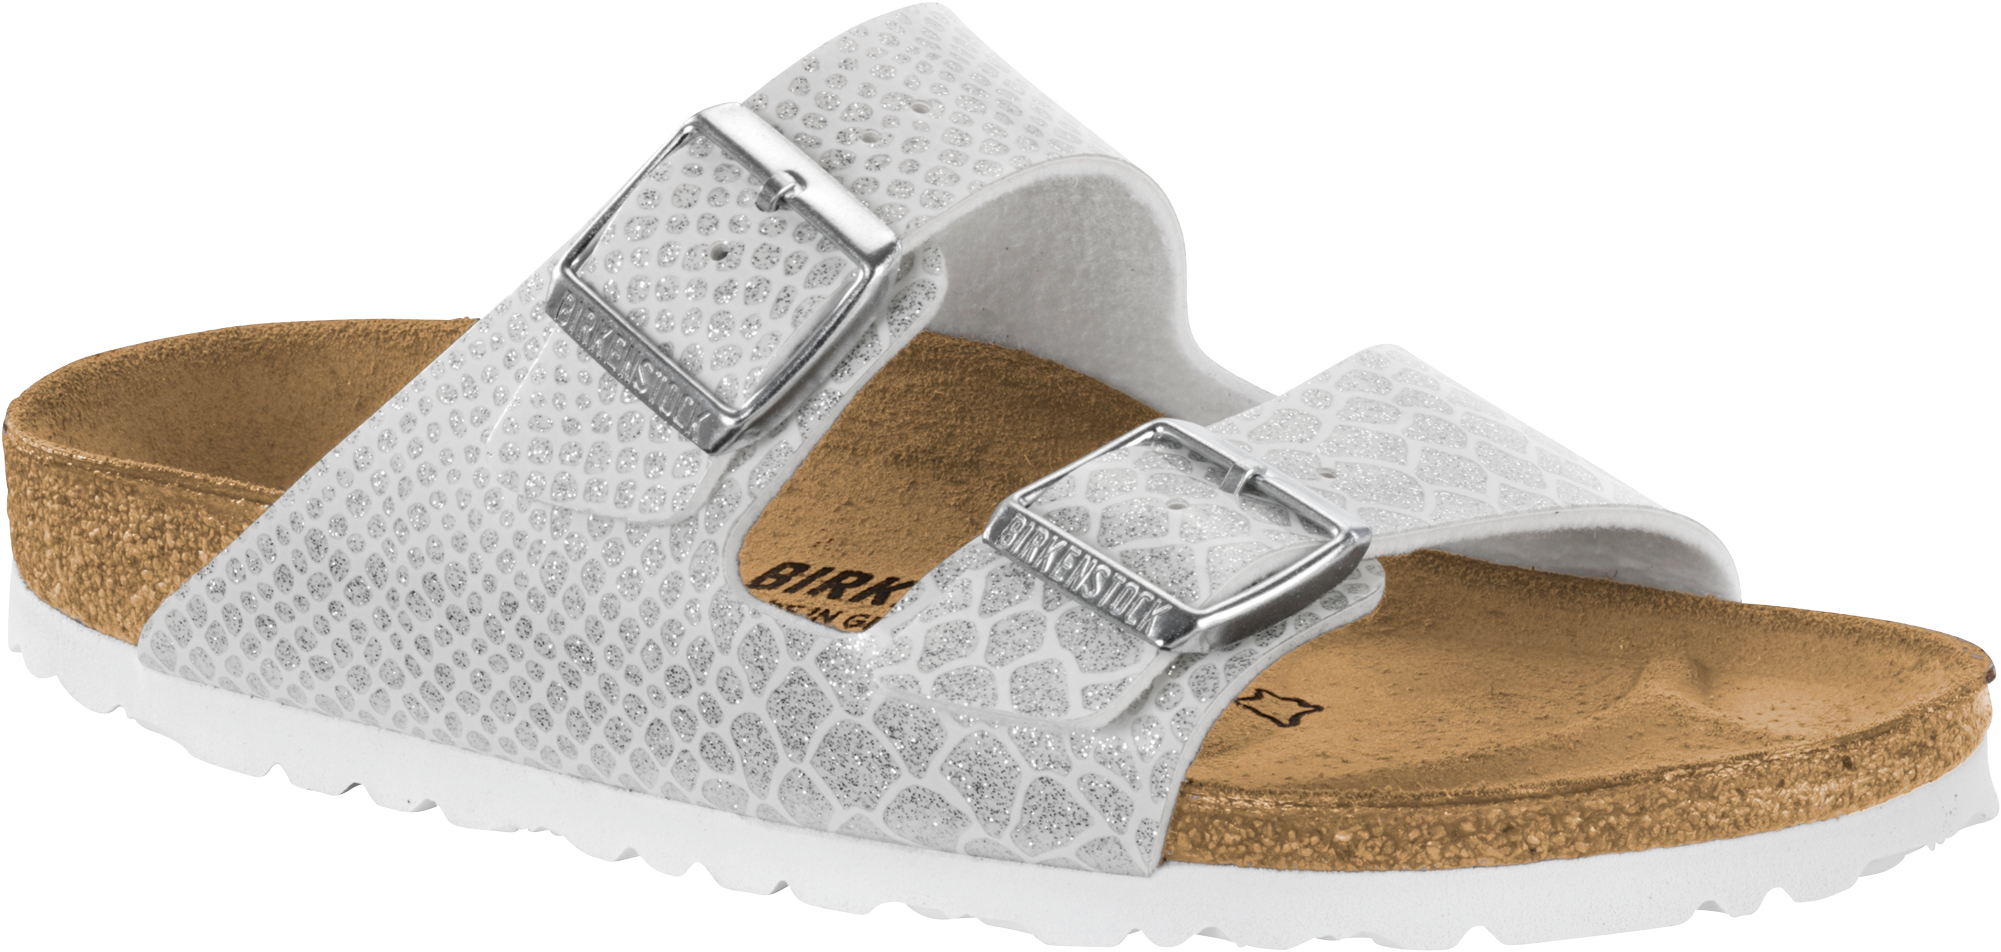 a608b5bbf3f19b Birkenstock Women s Arizona Magic Snake Strap Narrow Fit Sandals Uk3 White.  About this product. Picture 1 of 2  Picture 2 of 2